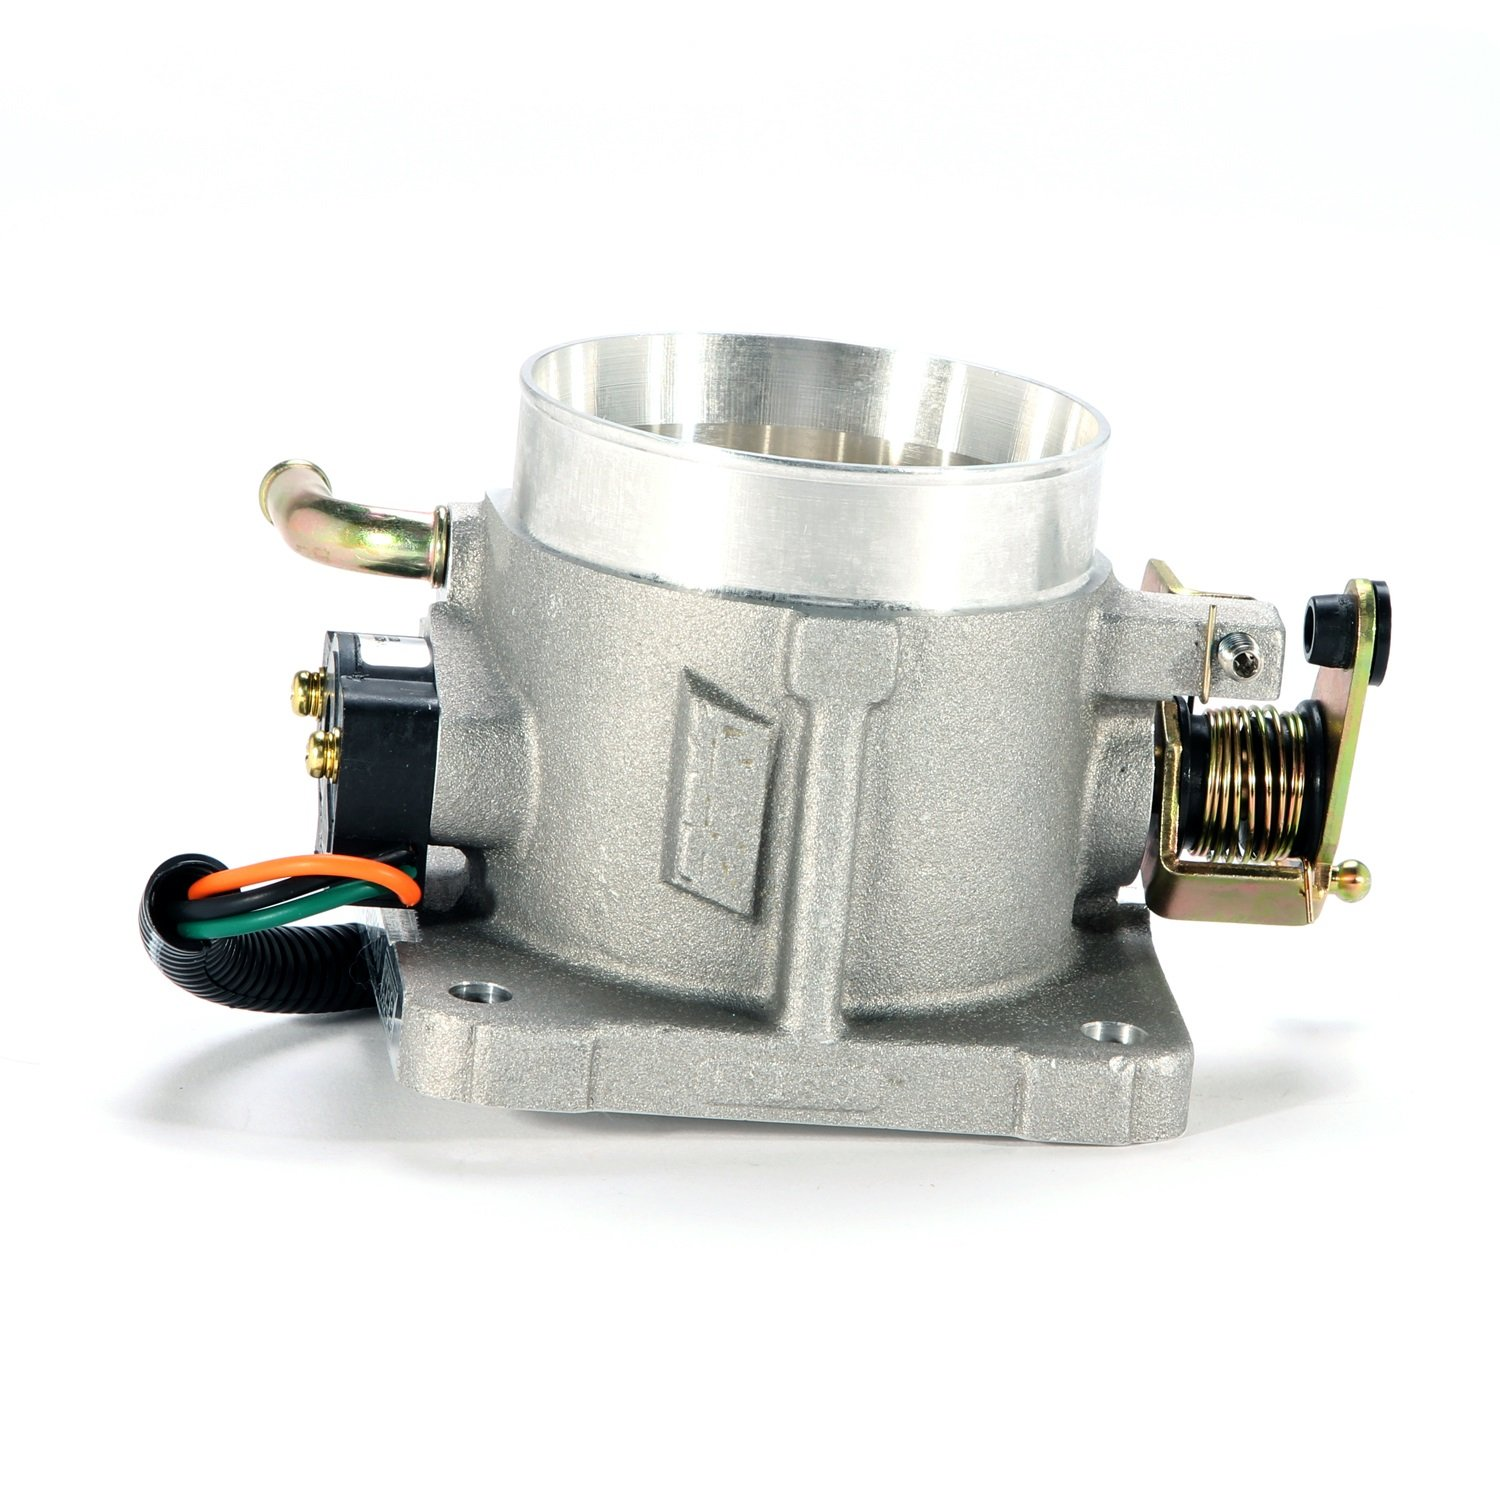 BBK 1501 70mm Throttle Body - High Flow Power Plus Series for Ford Mustang 5.0L by BBK Performance